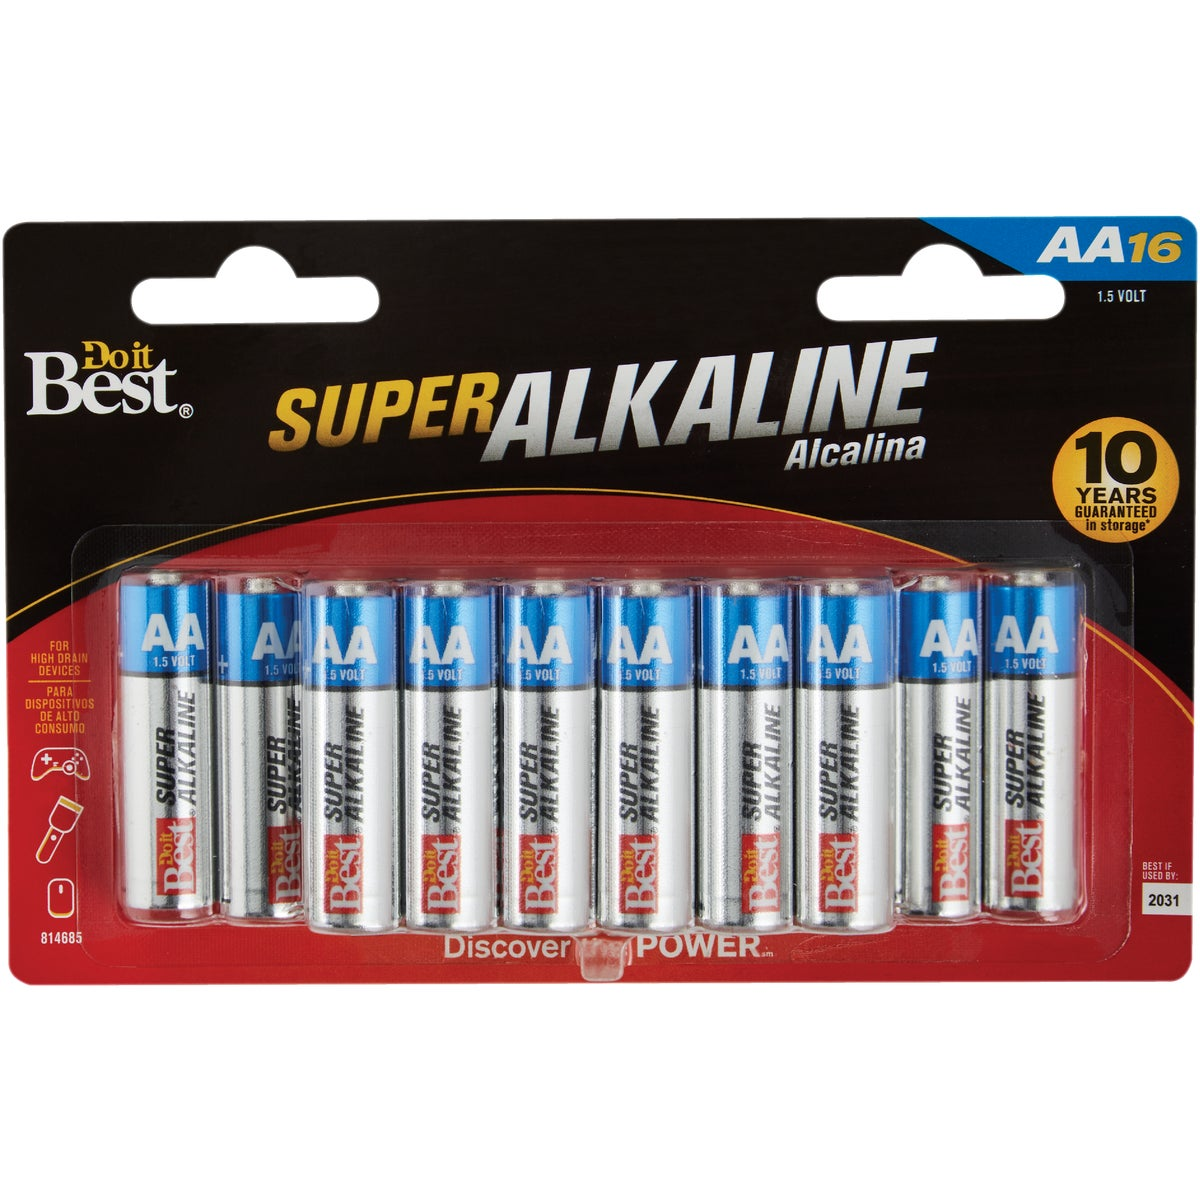 16PK DIB AA ALK BATTERY